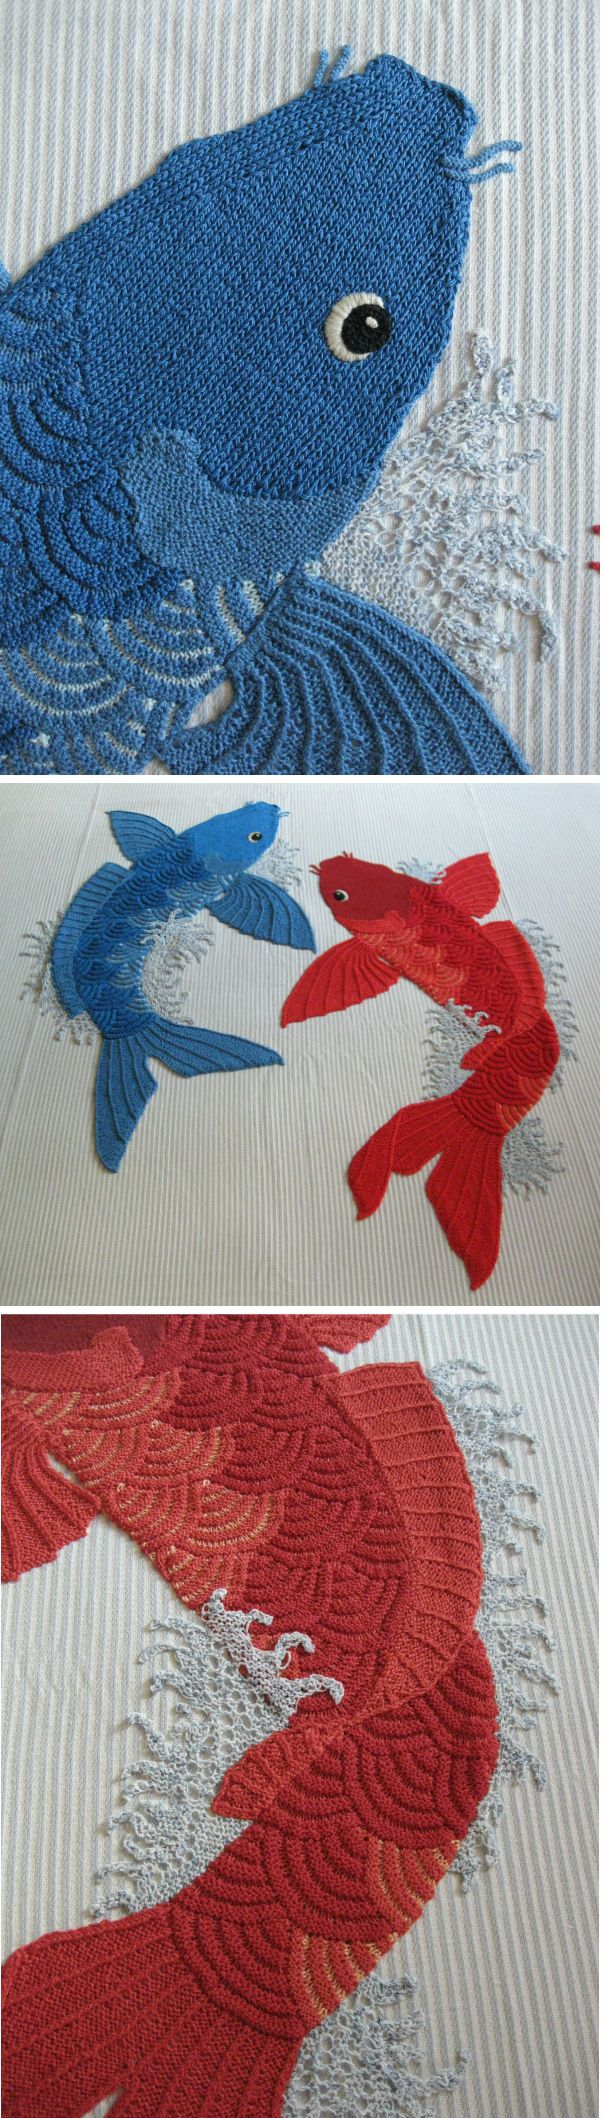 Copriletto #koi: ordito in lino, trama in cotone, #applicazione in #maglia su disegno originale dell'artista. Bedspread #koi: linen warp, cotton weft, #handknitted application, on original sketch by the artist.